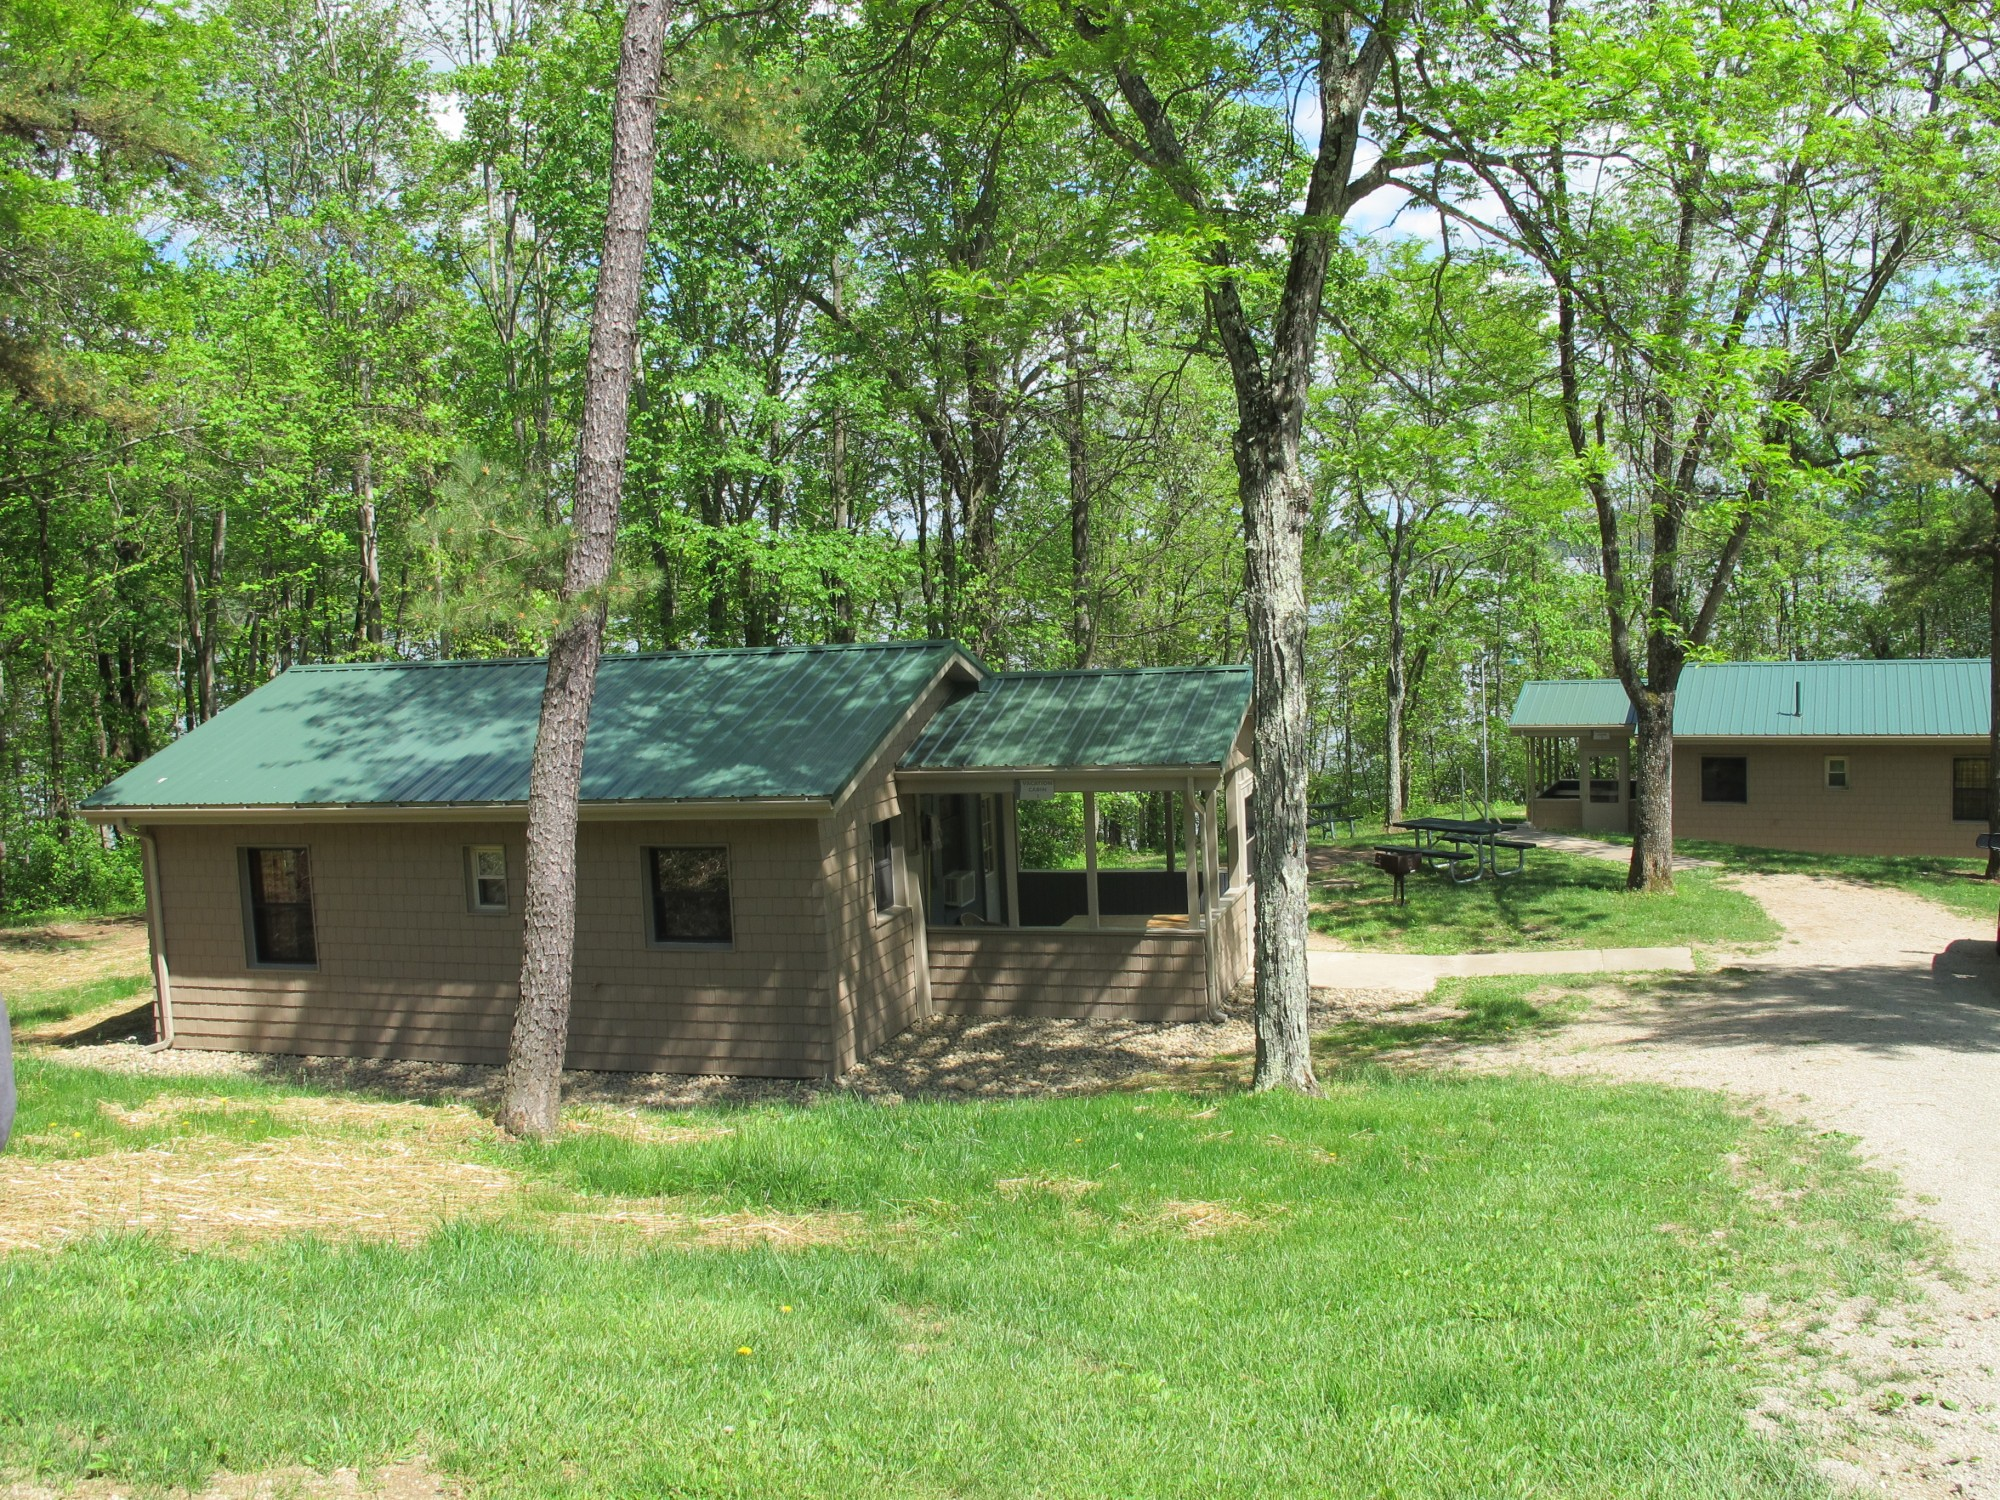 cottages seneca premier rent lakes properties cabins ny finger cabin ohio rentals help for lake x